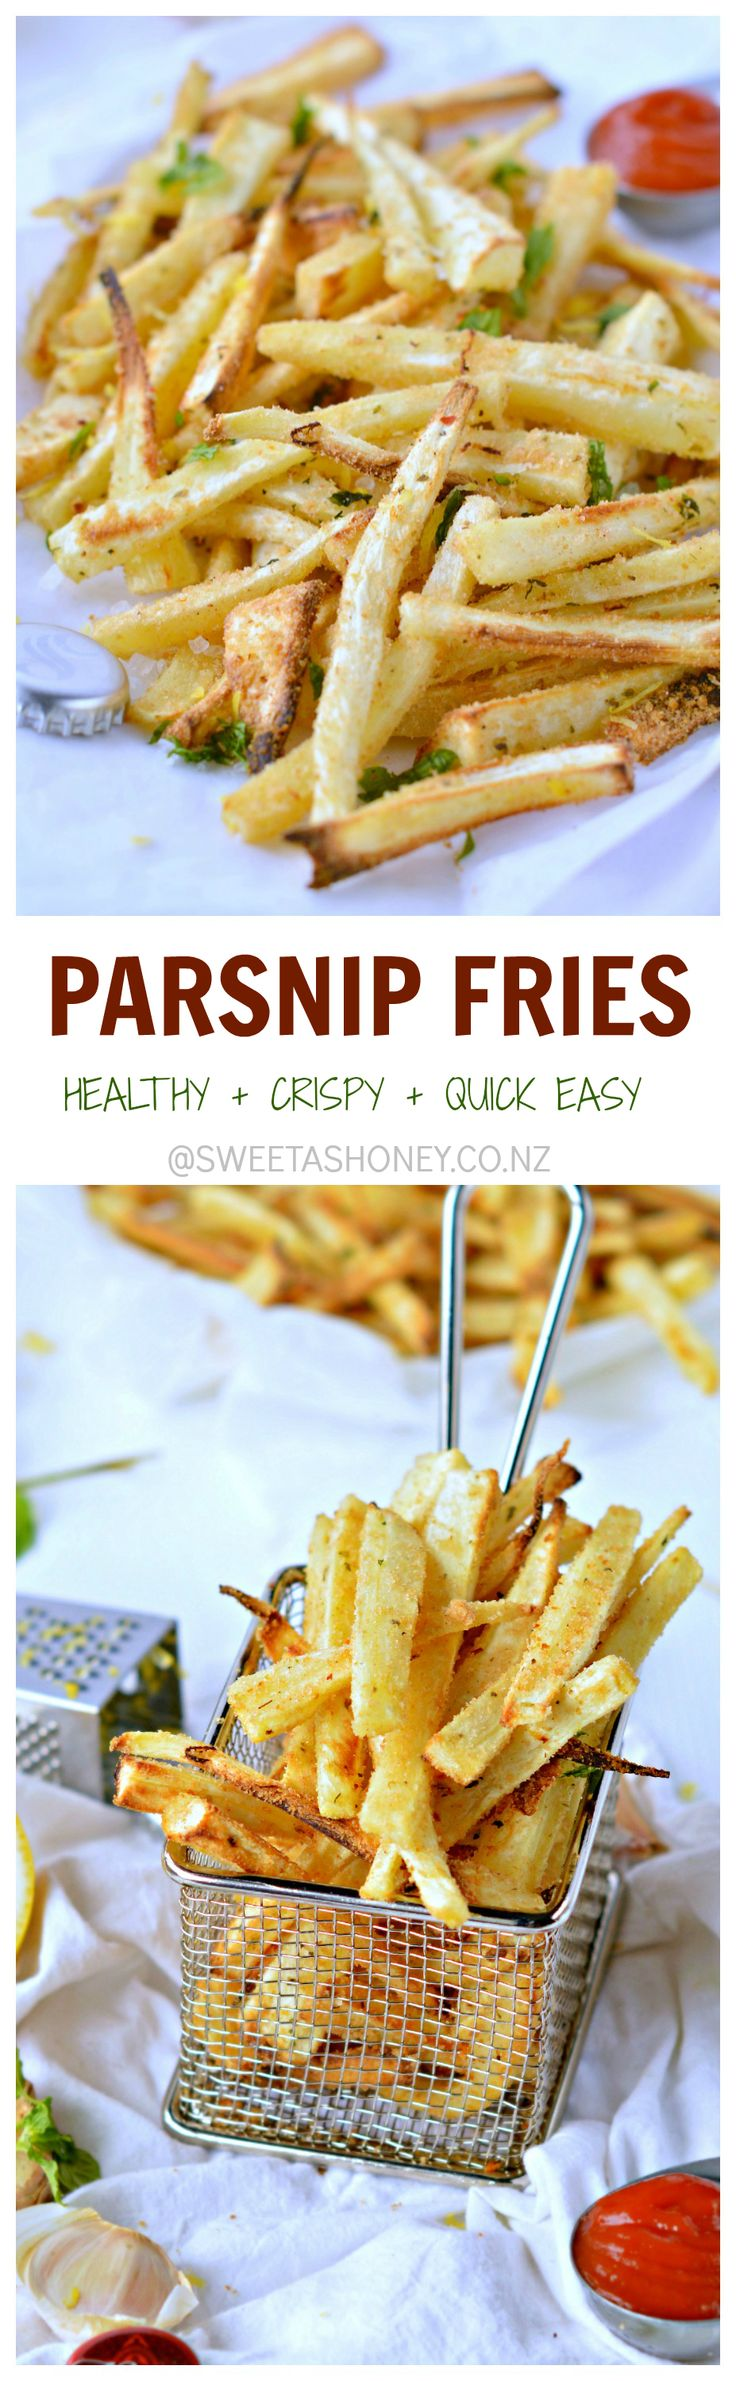 Super addictive Healthy Crispy Parsnip Fries with lemon + olive oil + mint + garlic. Only 85 kcal/100 g, 4WW. #glutenfree